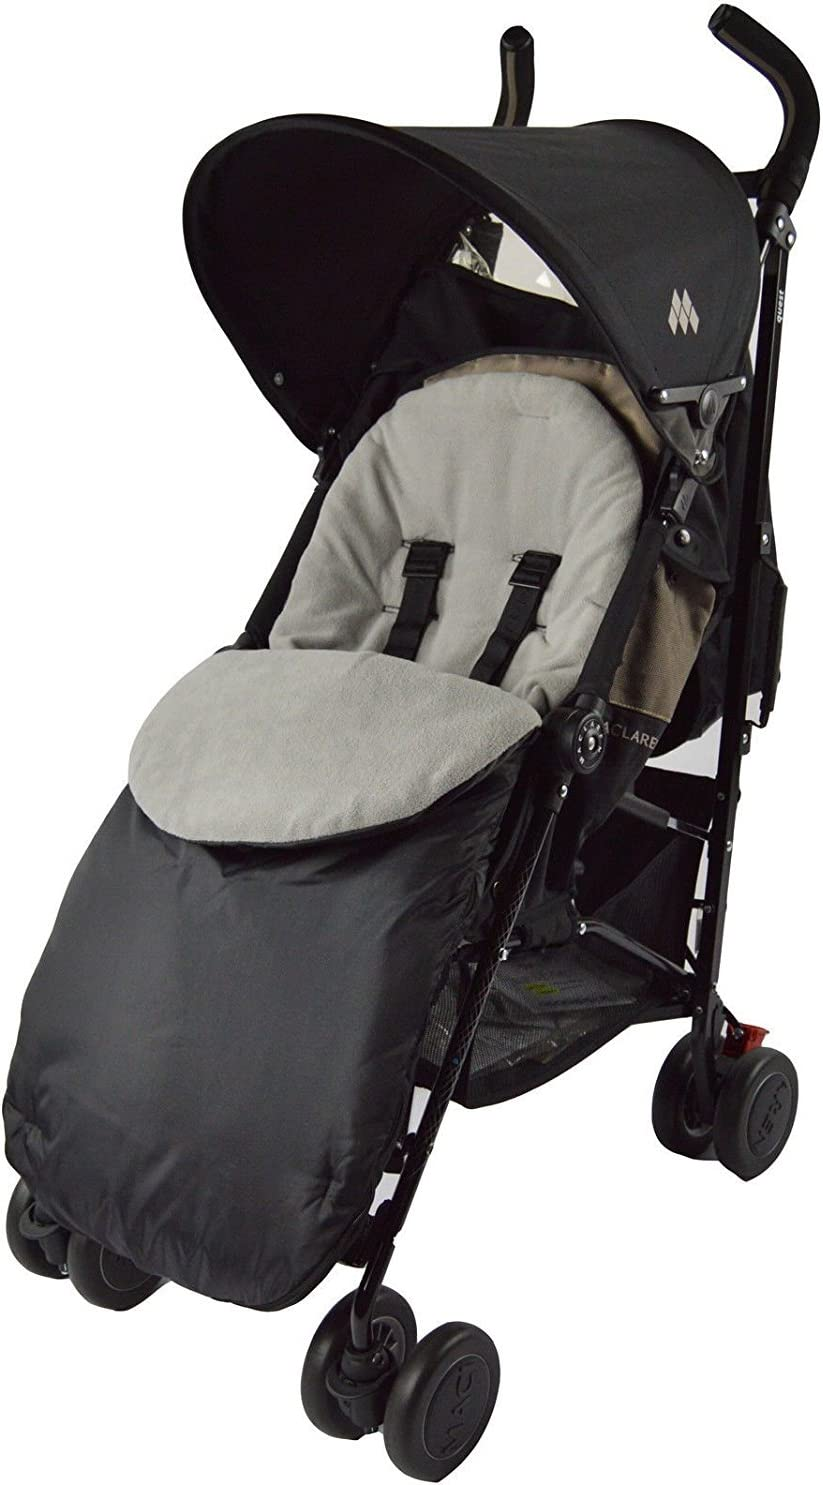 Dimple Pushchair Footmuff//Cosy Toes Compatible with Hauck Malibu Grey